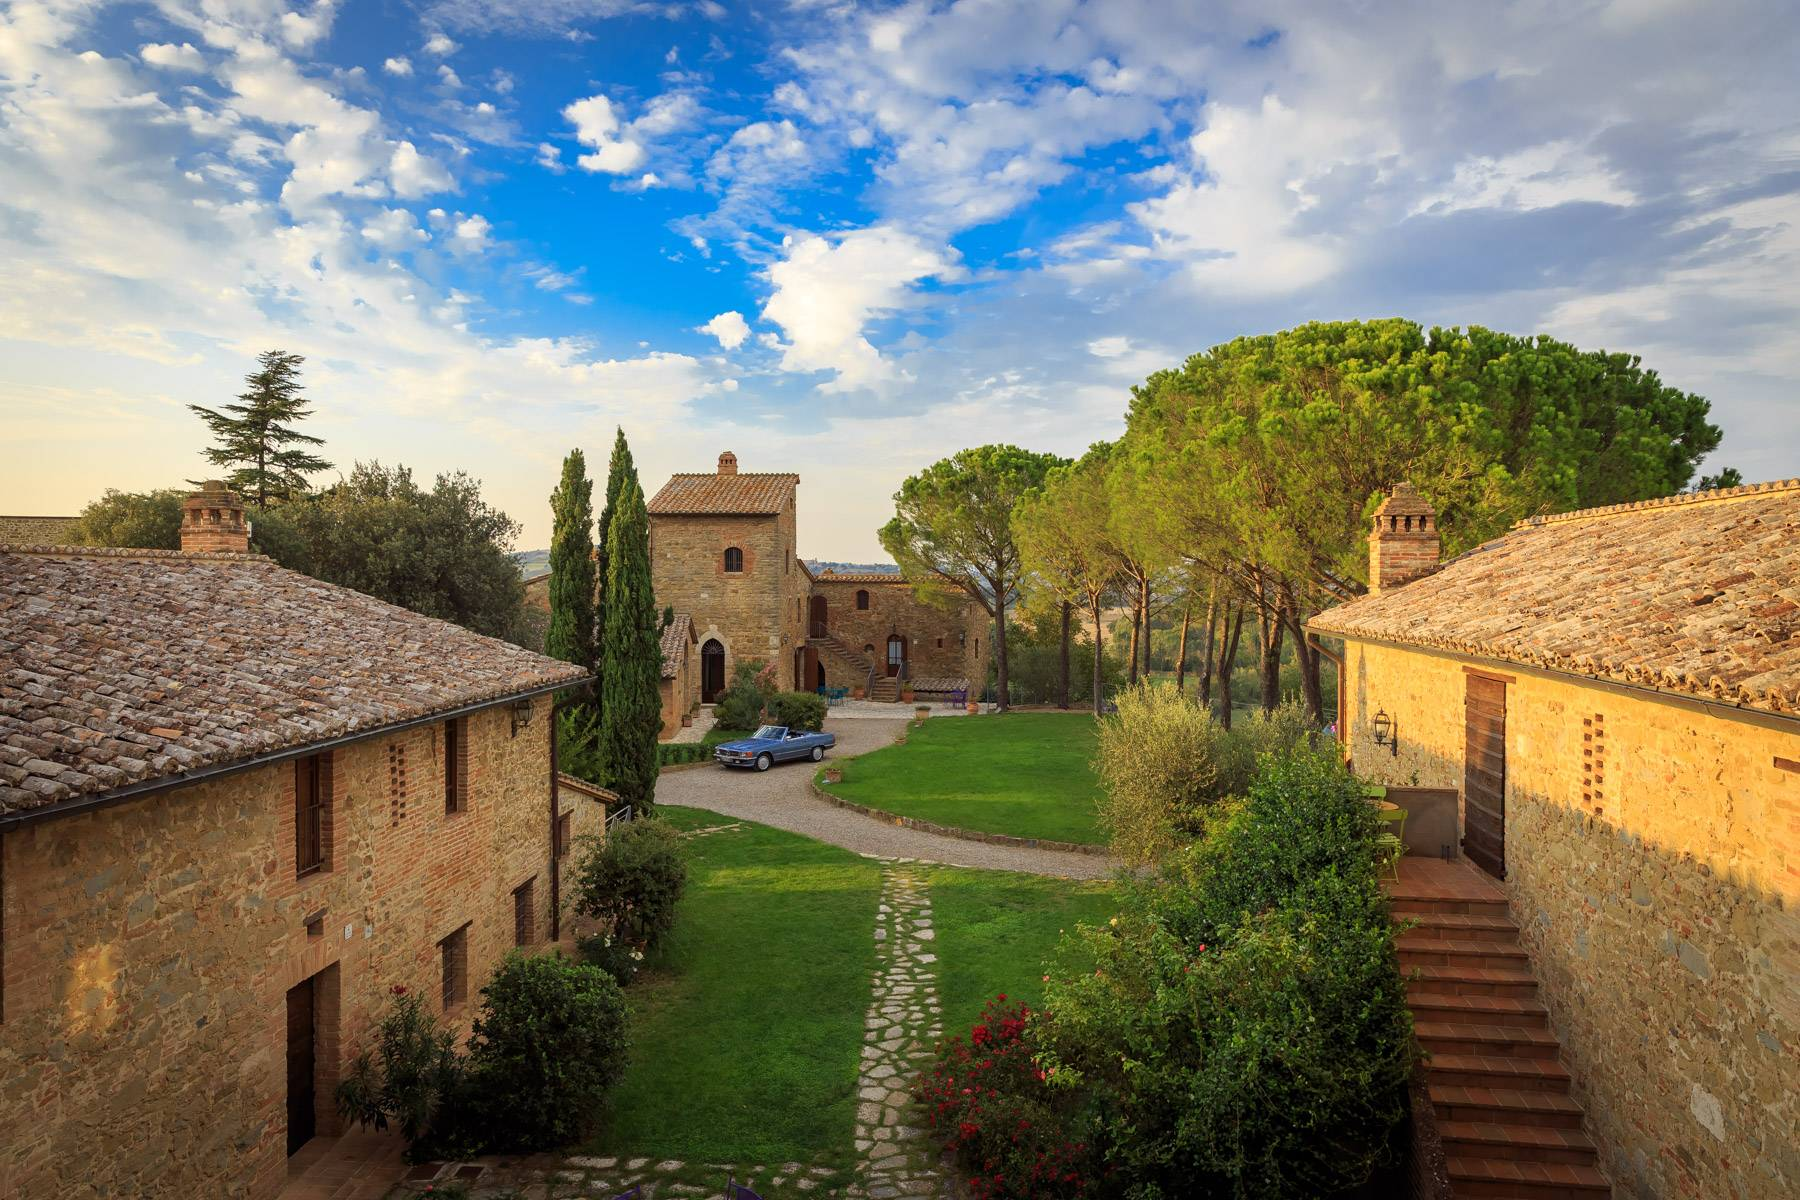 Magnificent castle in the heart of Umbria - 27